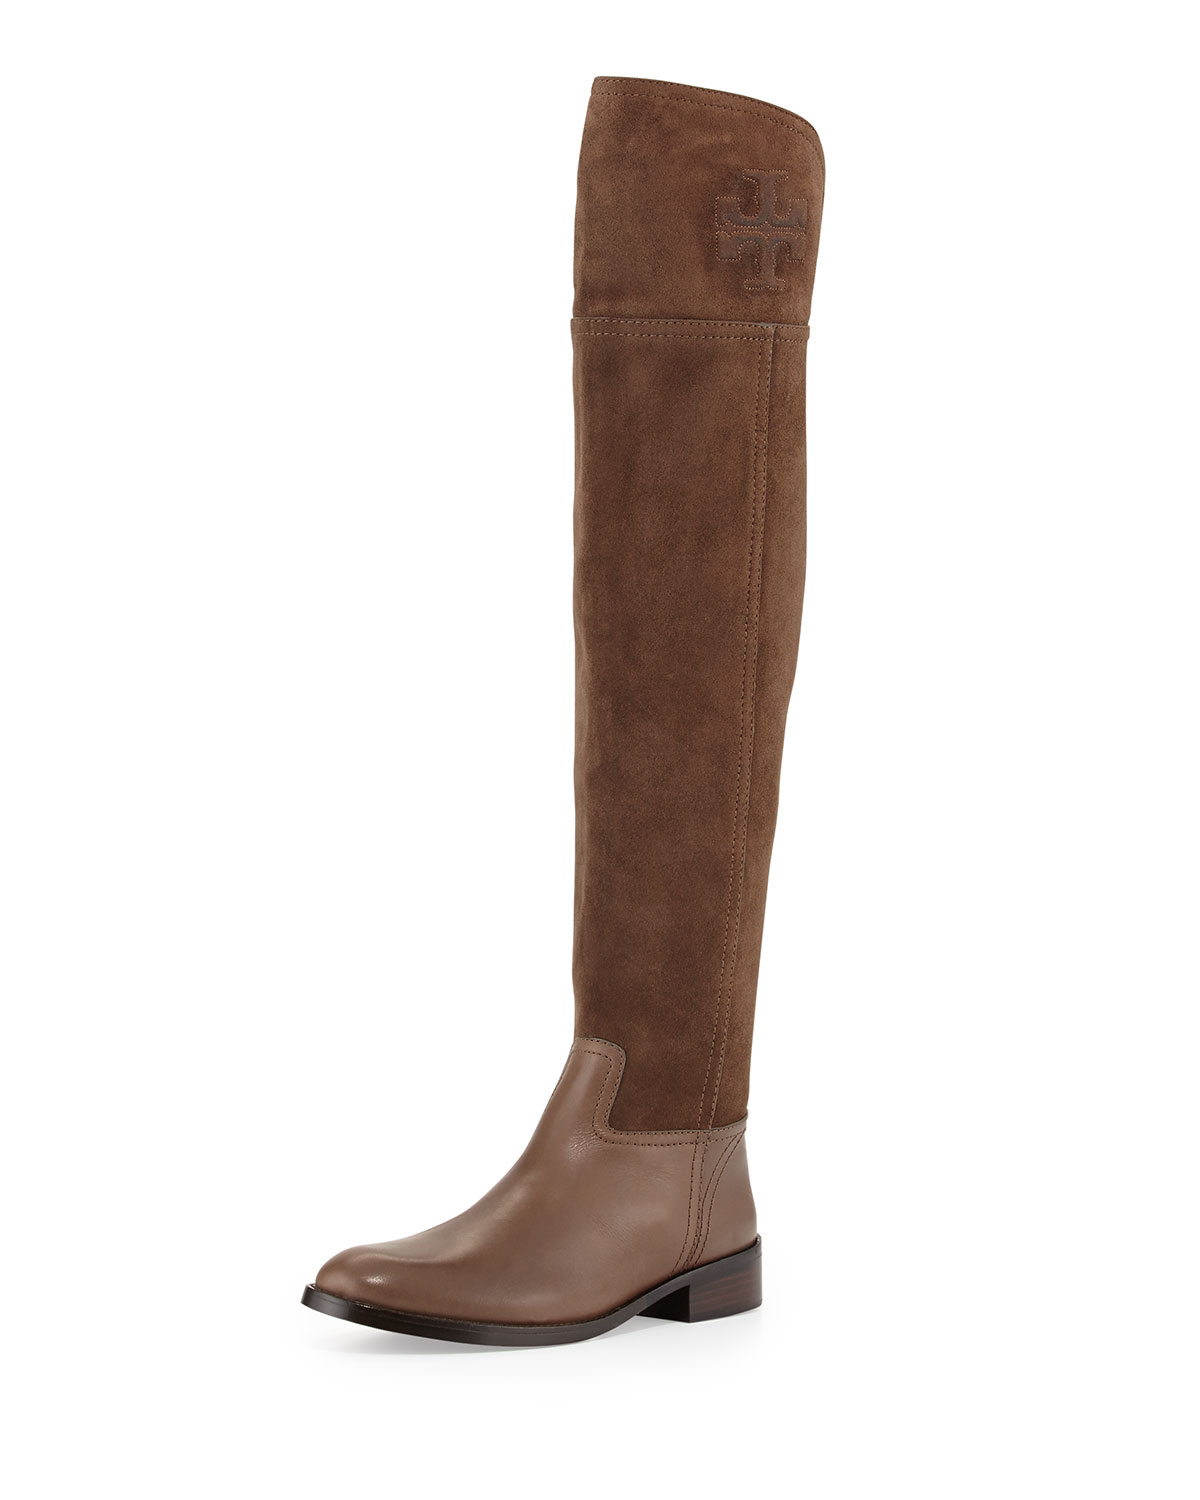 3c90a7543 Tory Burch Simone Suede Over-the-Knee Boot